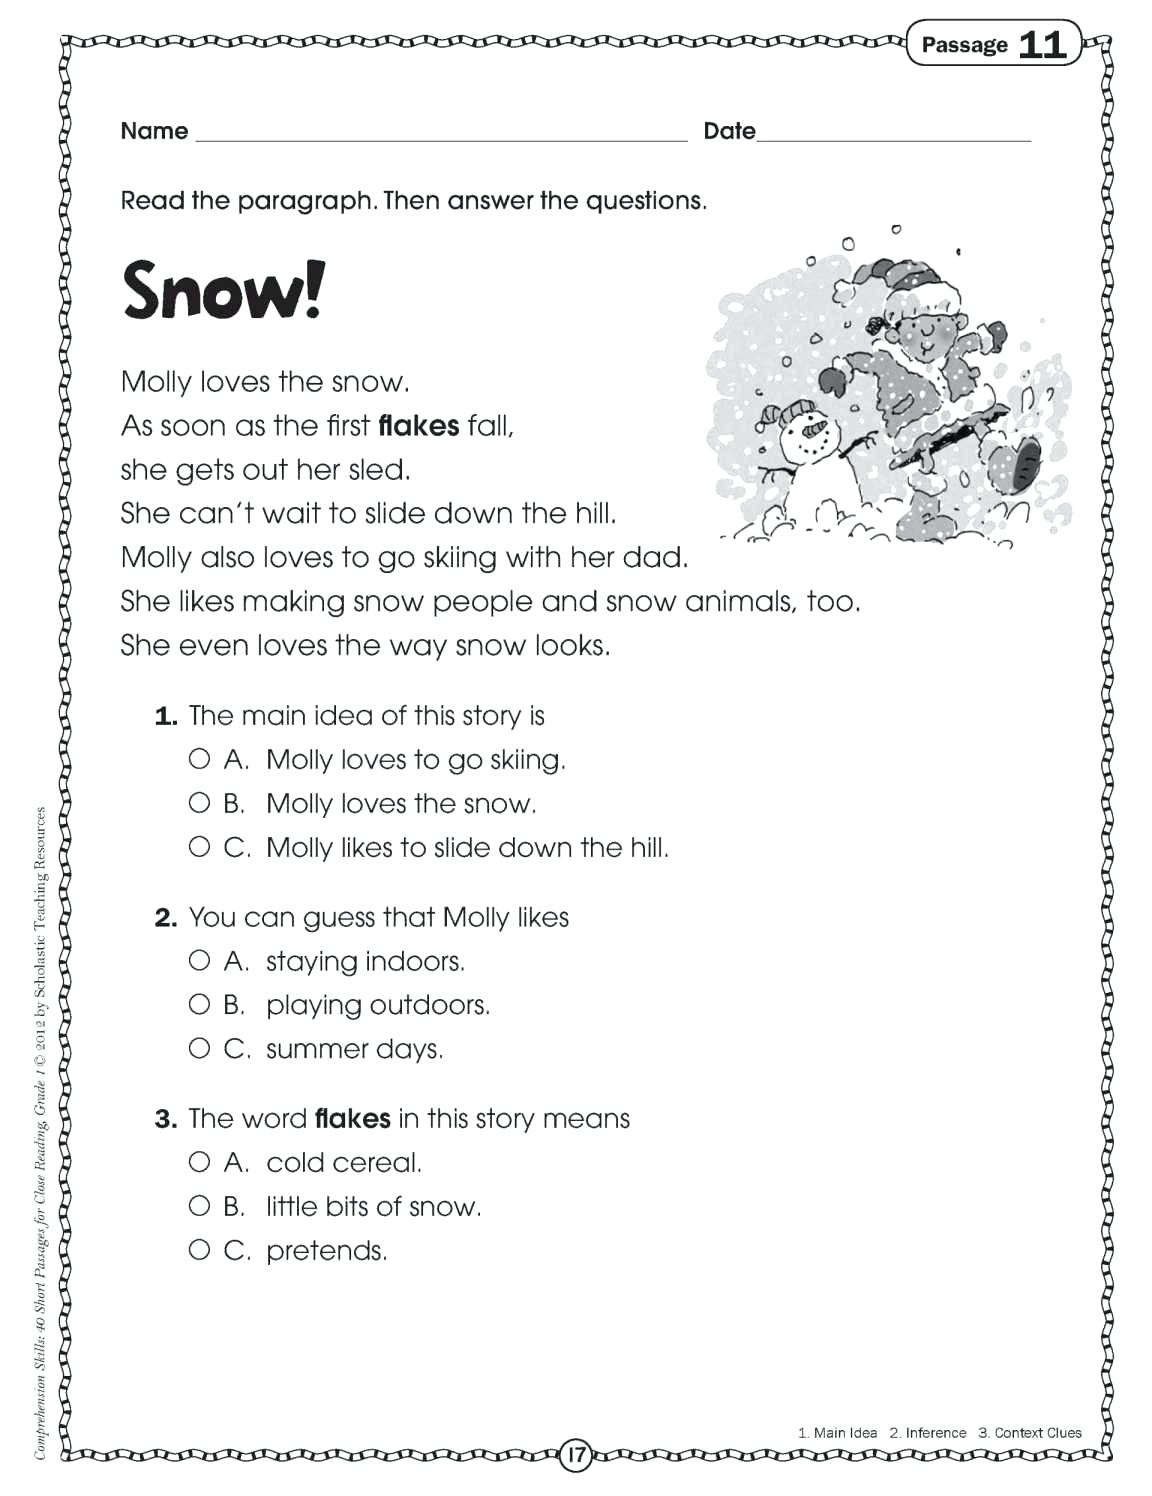 Comprehension Activities For 2Nd Grade Free Printable Reading - Free Printable Short Stories For 2Nd Graders